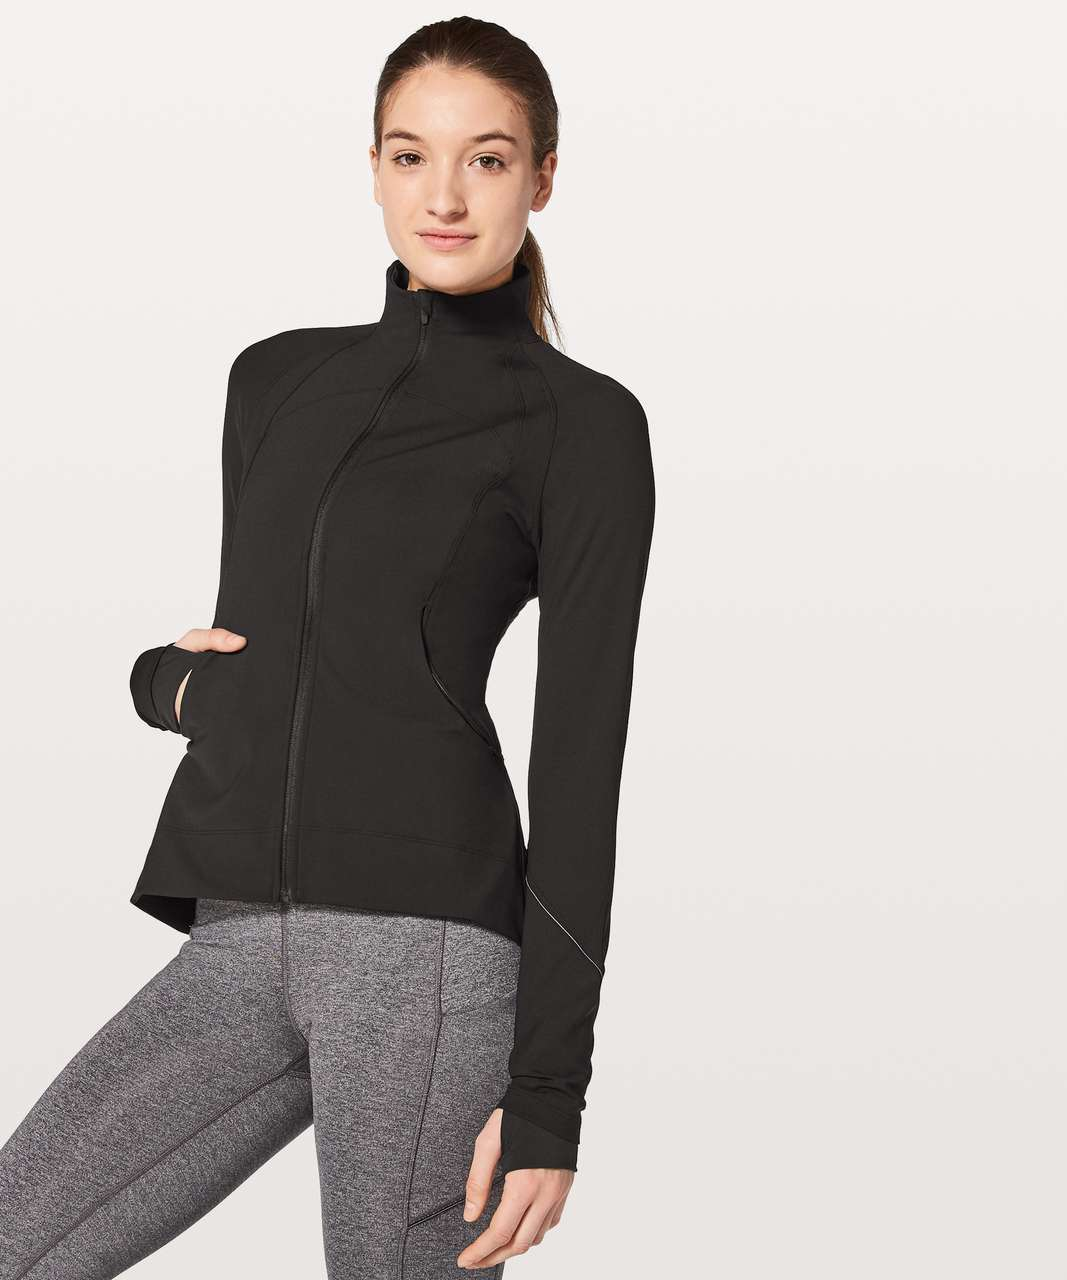 Lululemon Gait Keeper Jacket - Black